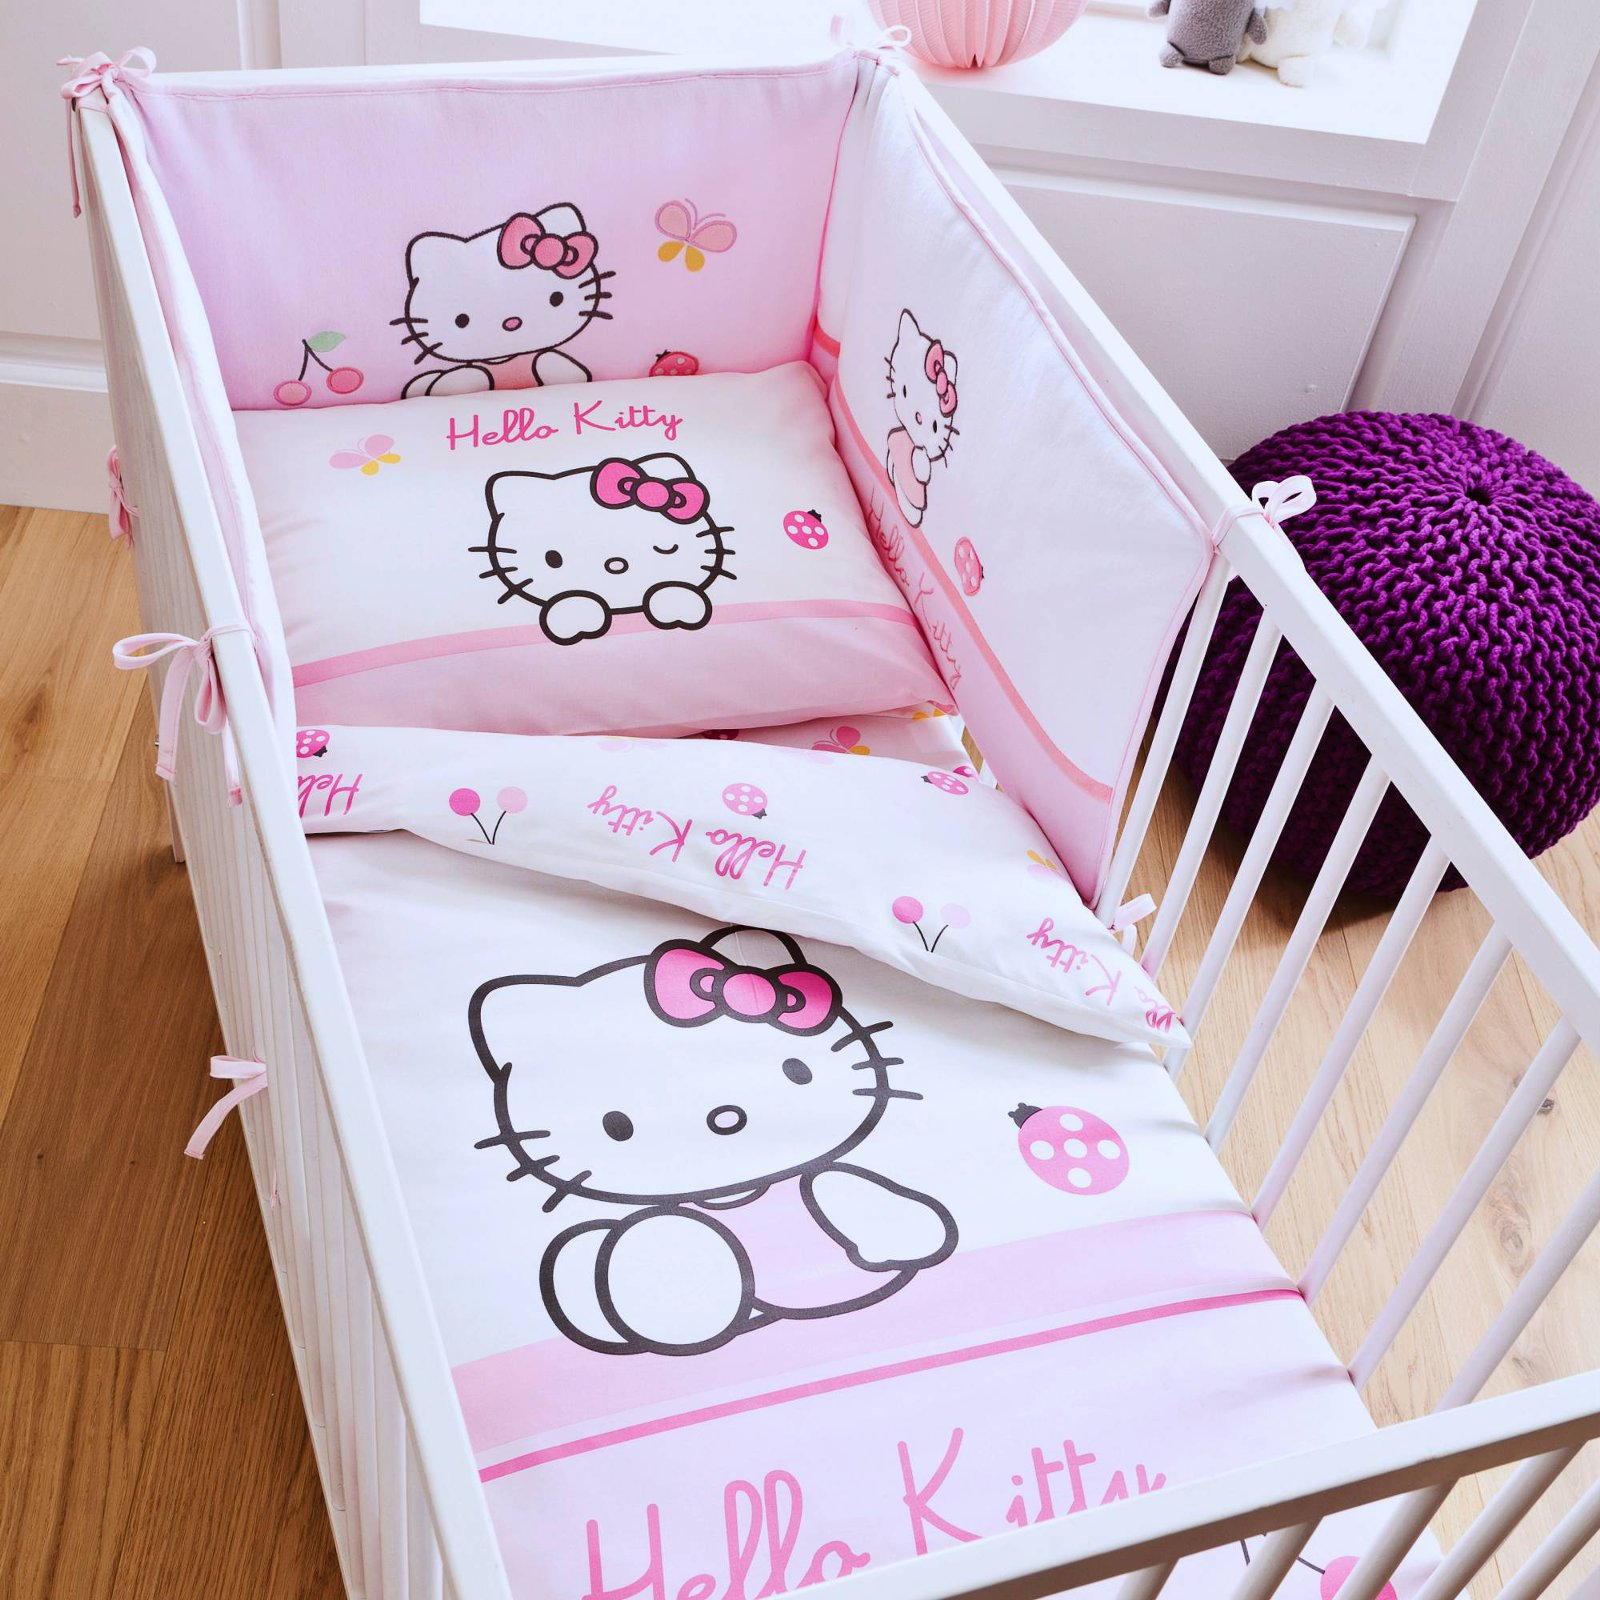 deco hello kitty pour chambre bebe - Decoration Hello Kitty Chambre Bebe